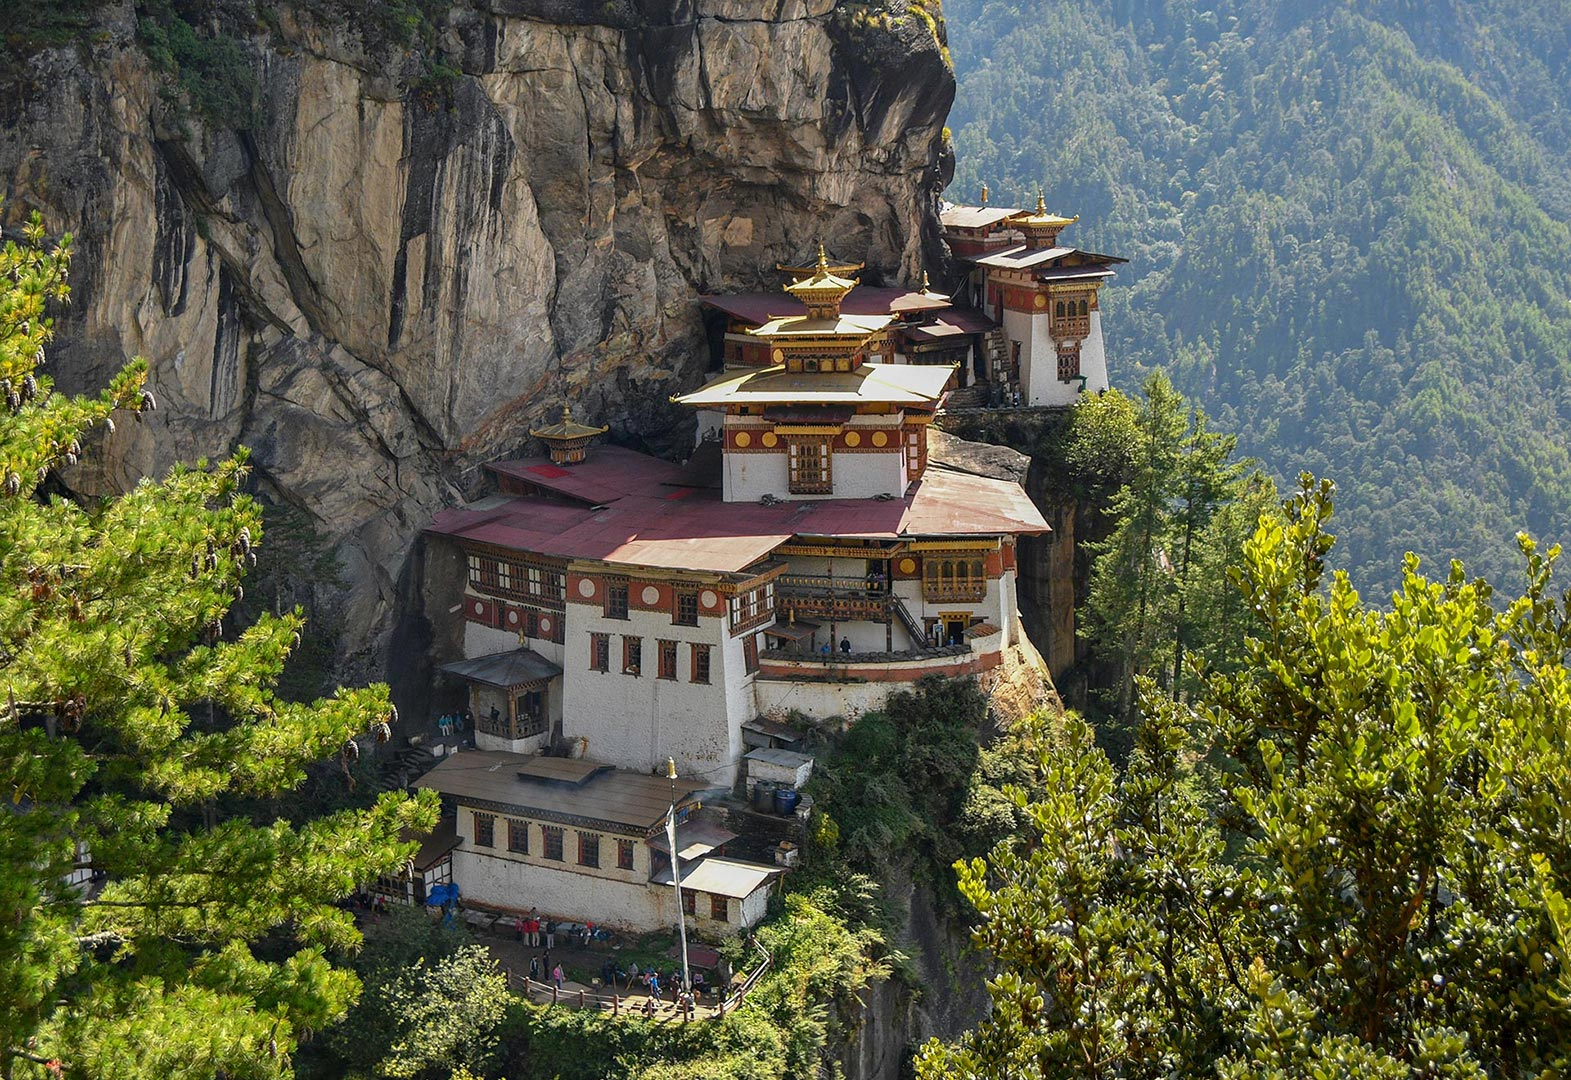 Tiger's Nest Monastery in Bhutan